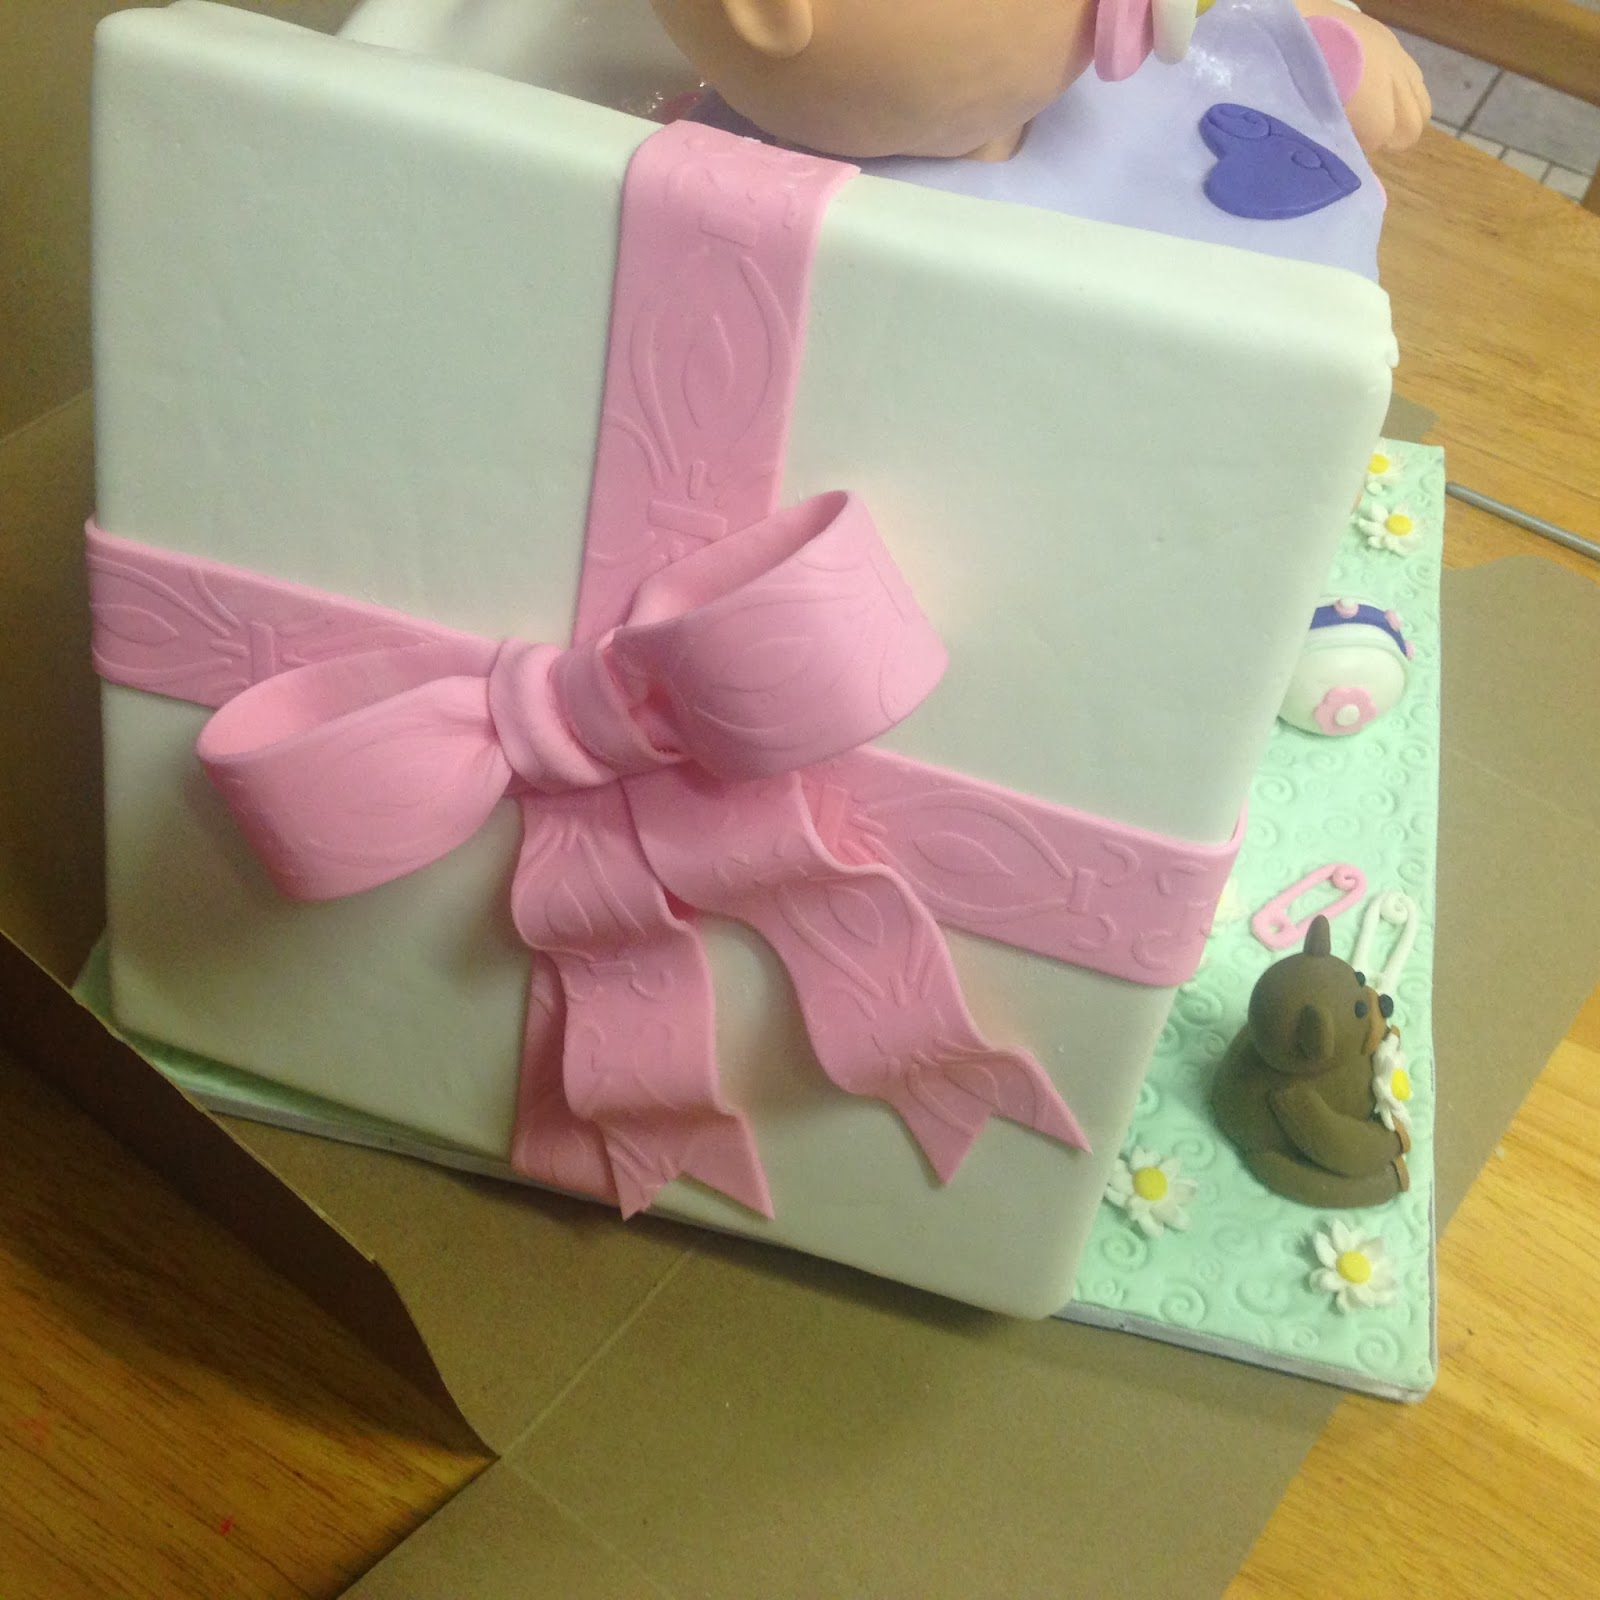 Cakes by Mindy: Baby Doll Cake 8